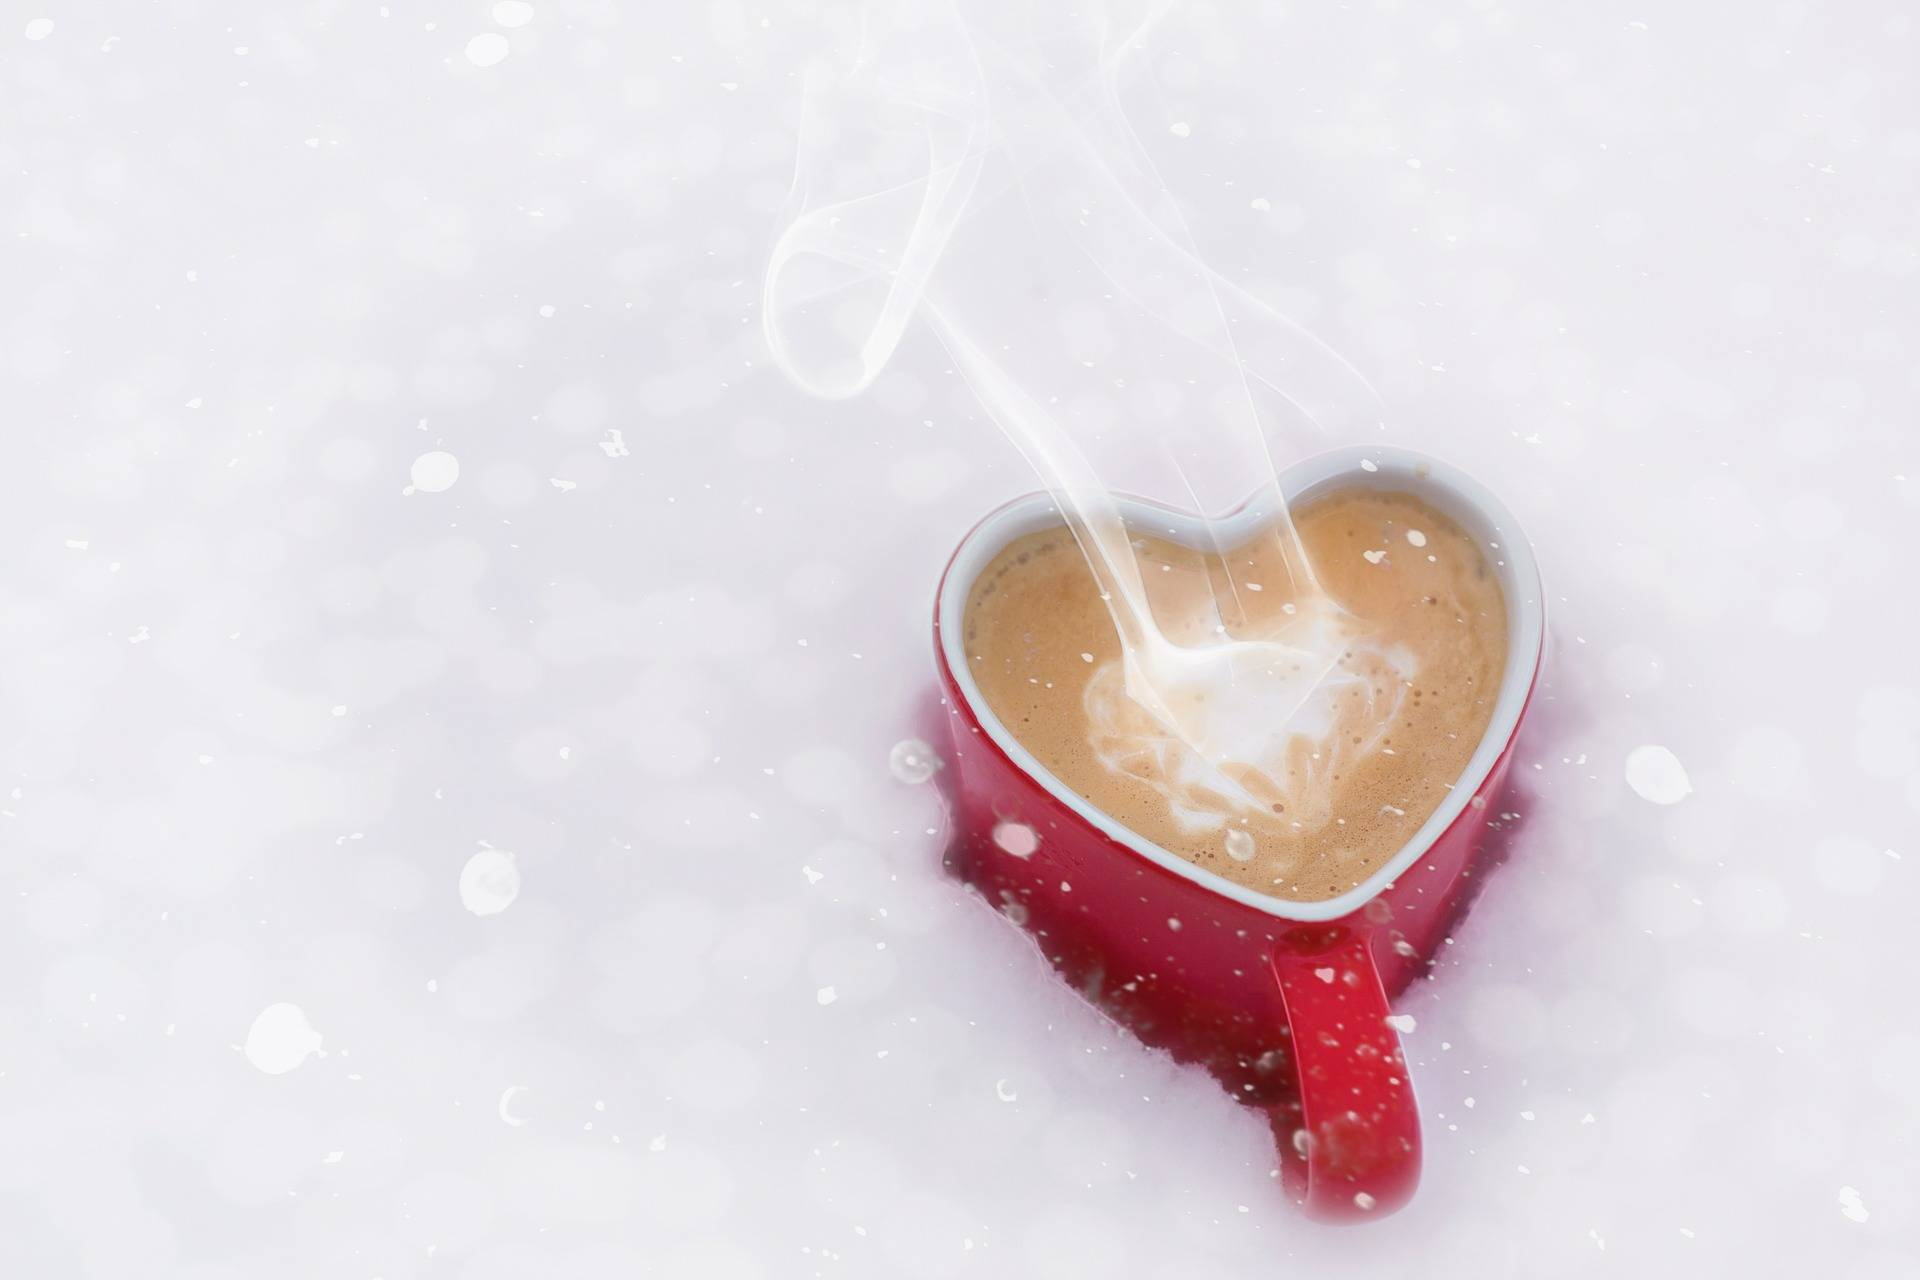 Love Him, Love, Relationships, Relationship, Romance, Friendship, Male, Valentine's Day, Cupid, Valentine, Coffee, Cold Weather, Snow, Cold, Blogger, London, Blog, Blog A Book Etc, Fay